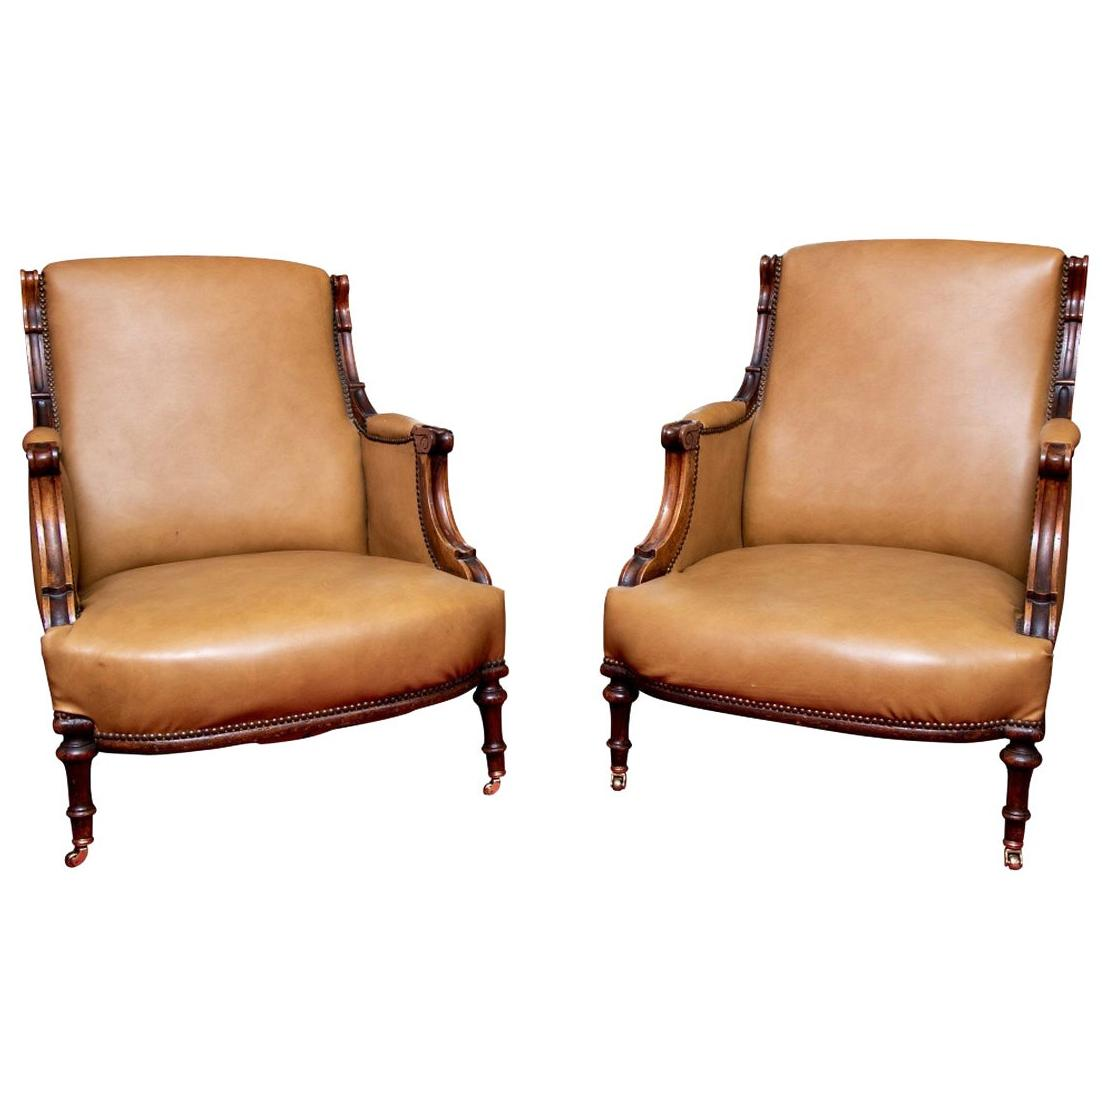 Pair Antique Carved Leather Upholstered Club Chairs